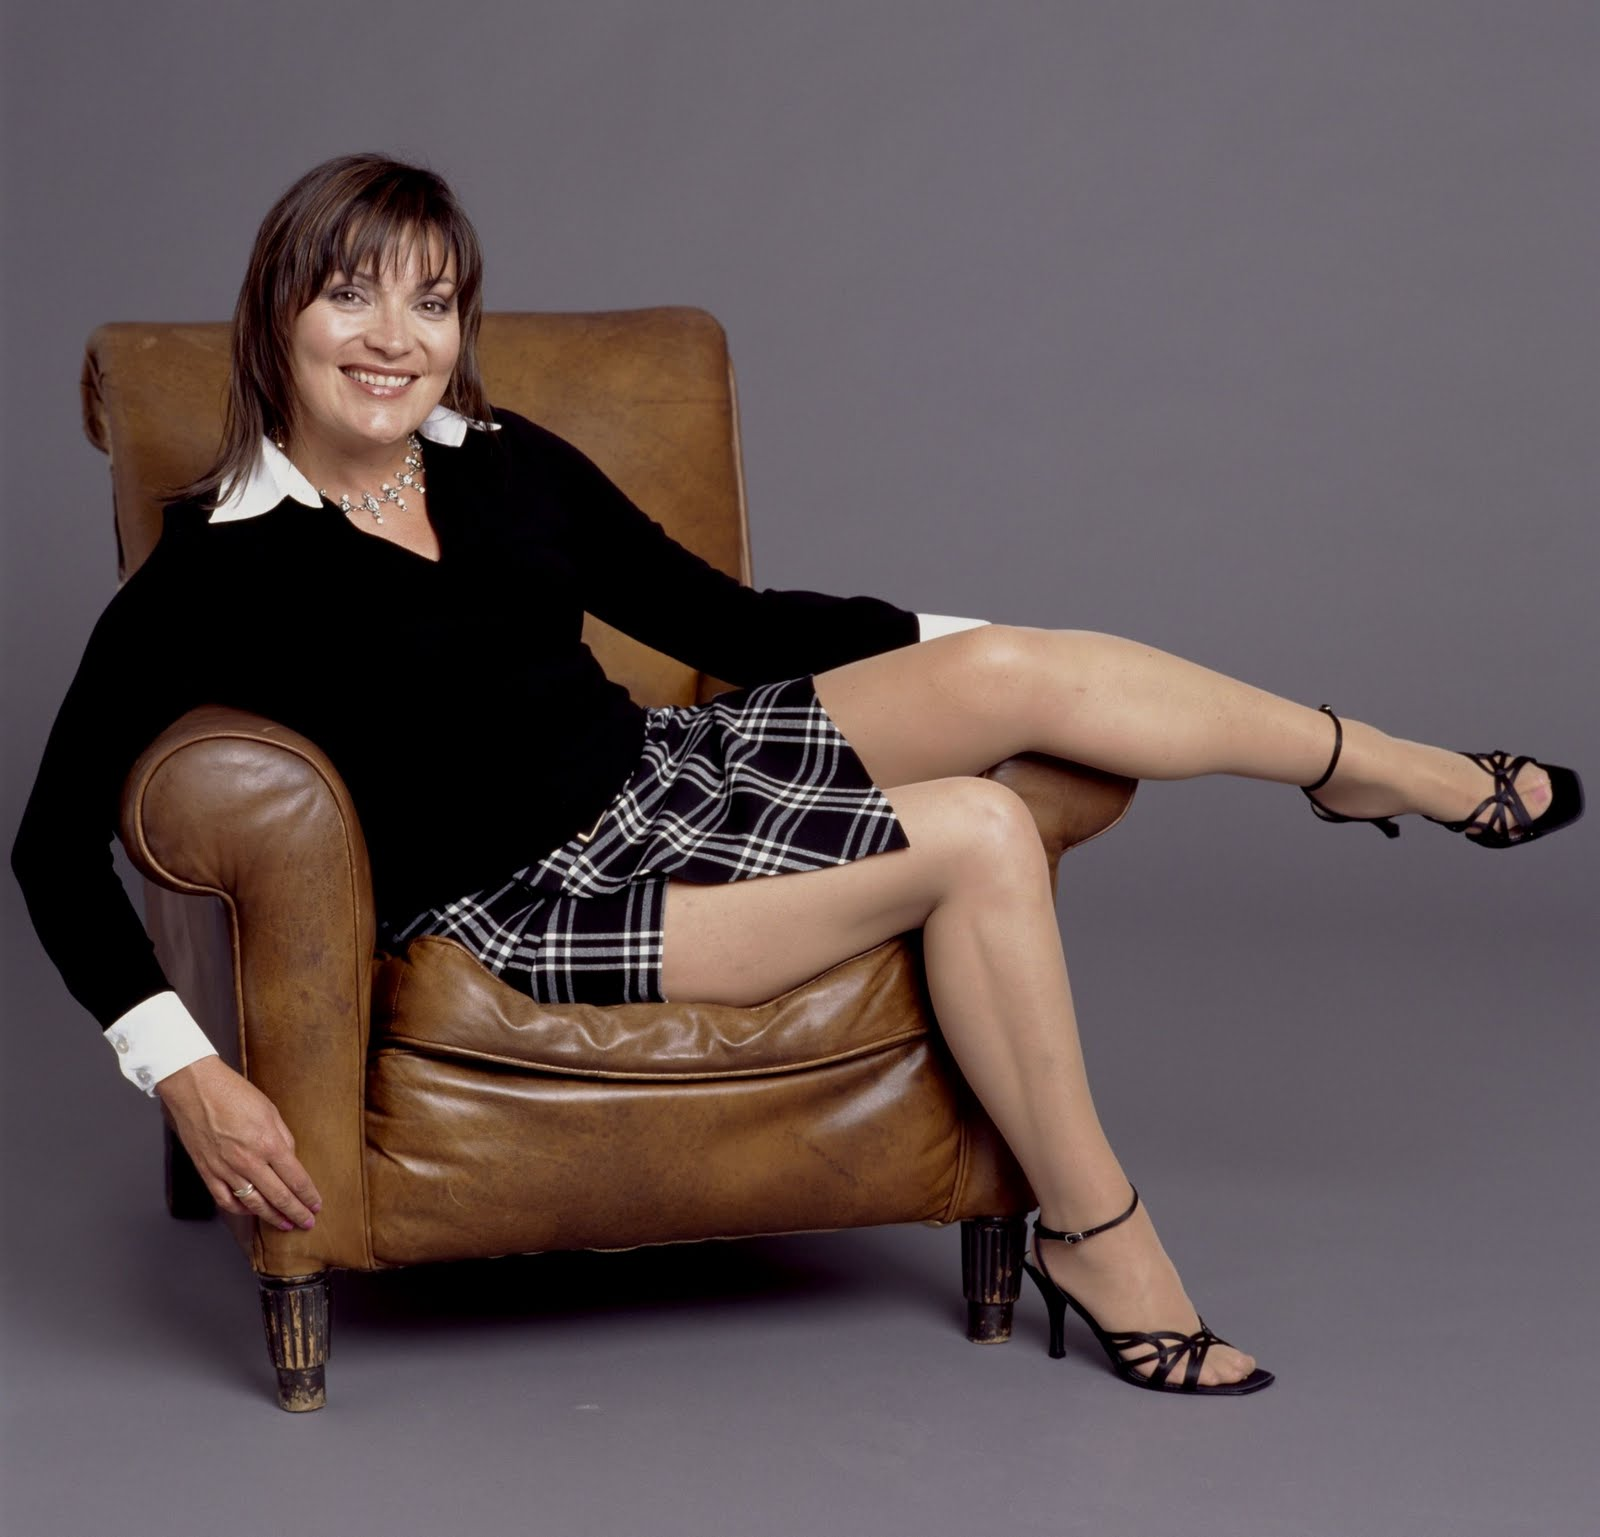 Kelly In Stockings Hot 78